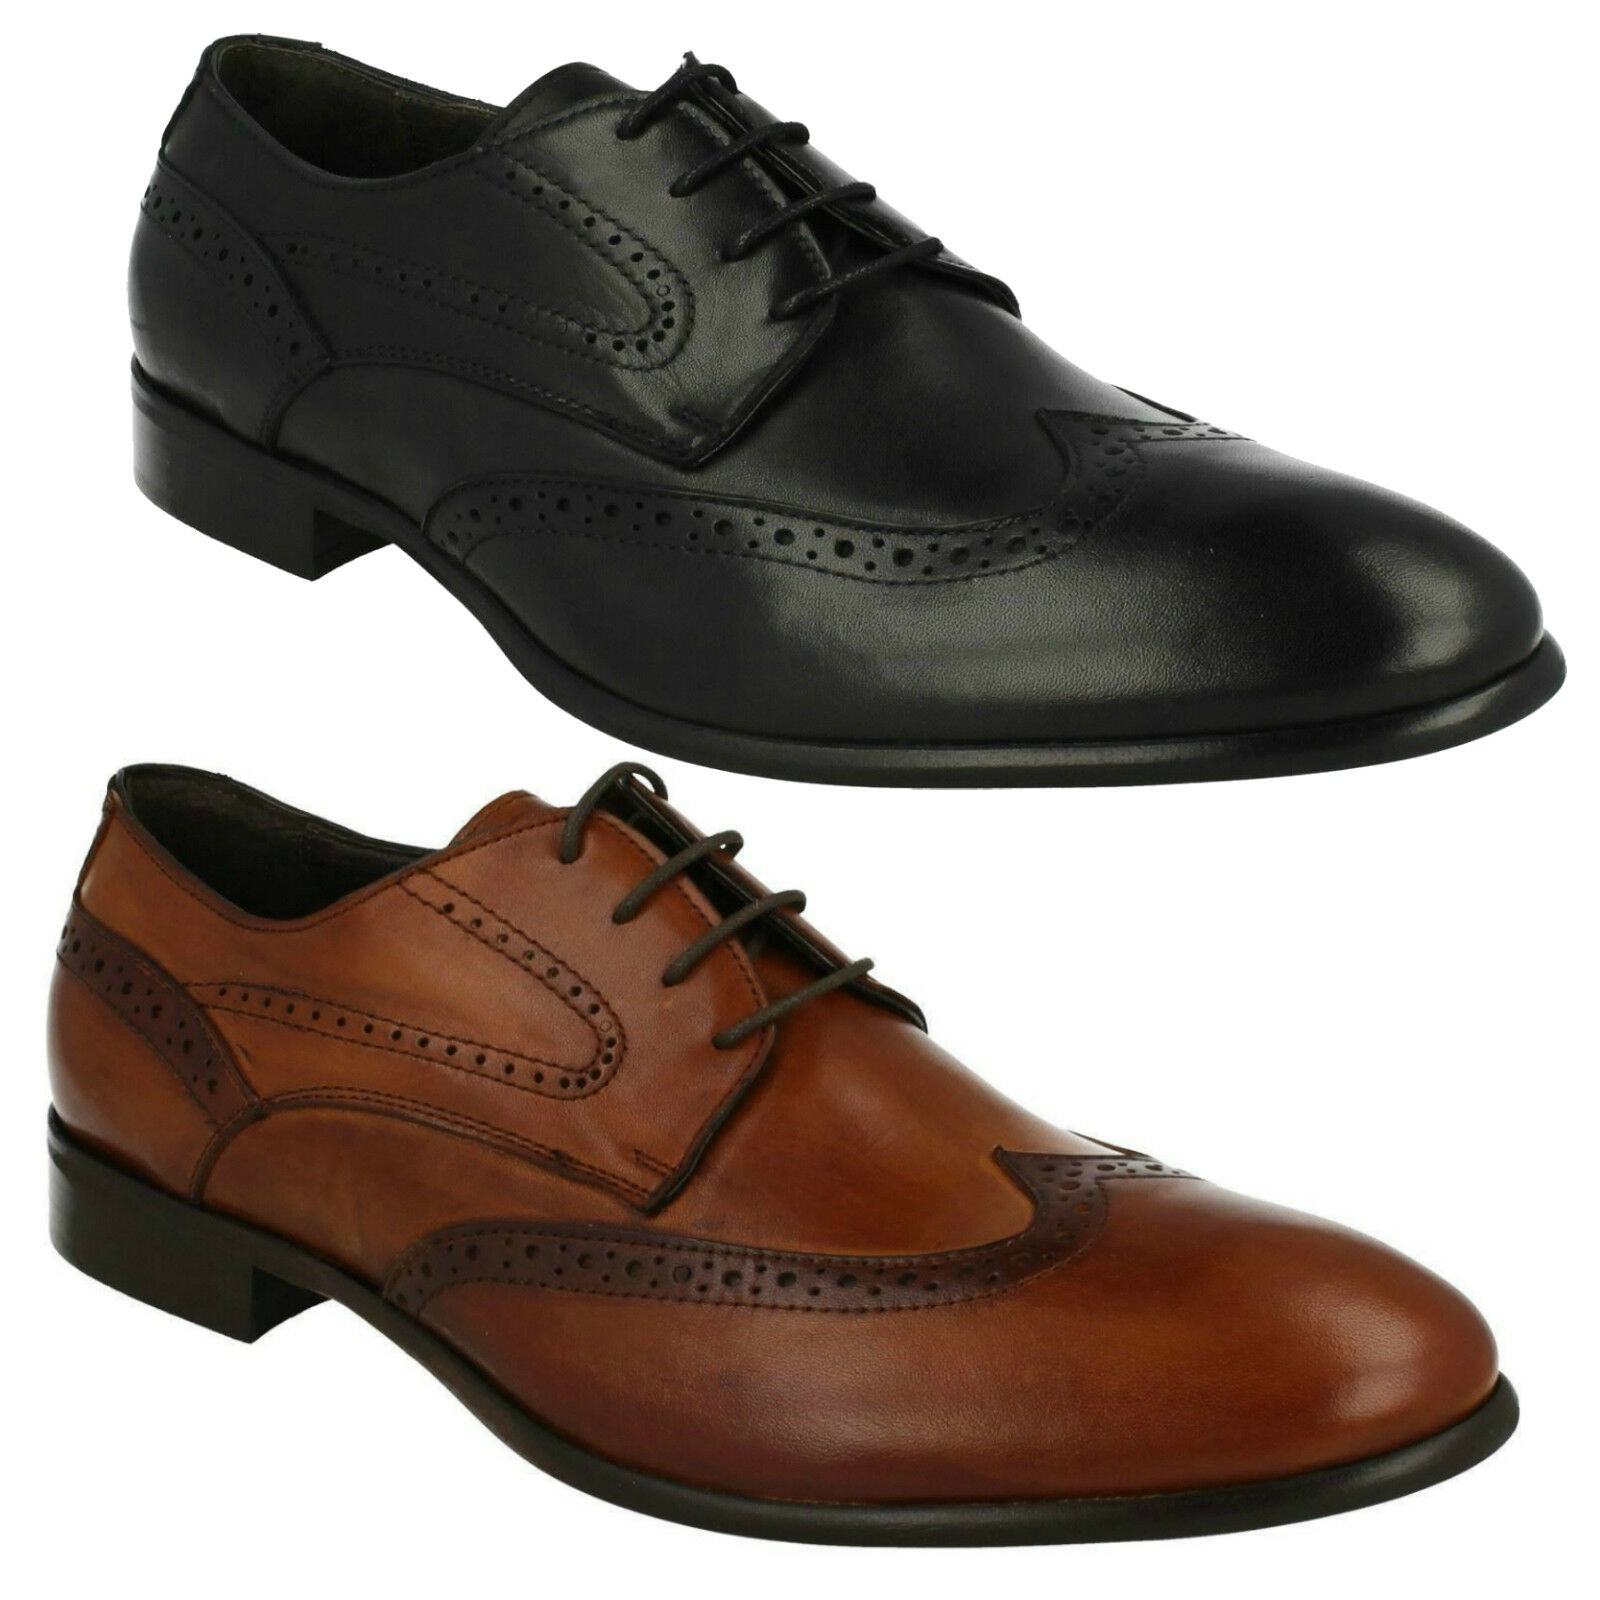 MORENA GABBRIELLI FA-B2423 MENS SMART LACE UP BROGUE FORMAL WORK schuhe EVERYDAY  | Ästhetisches Aussehen